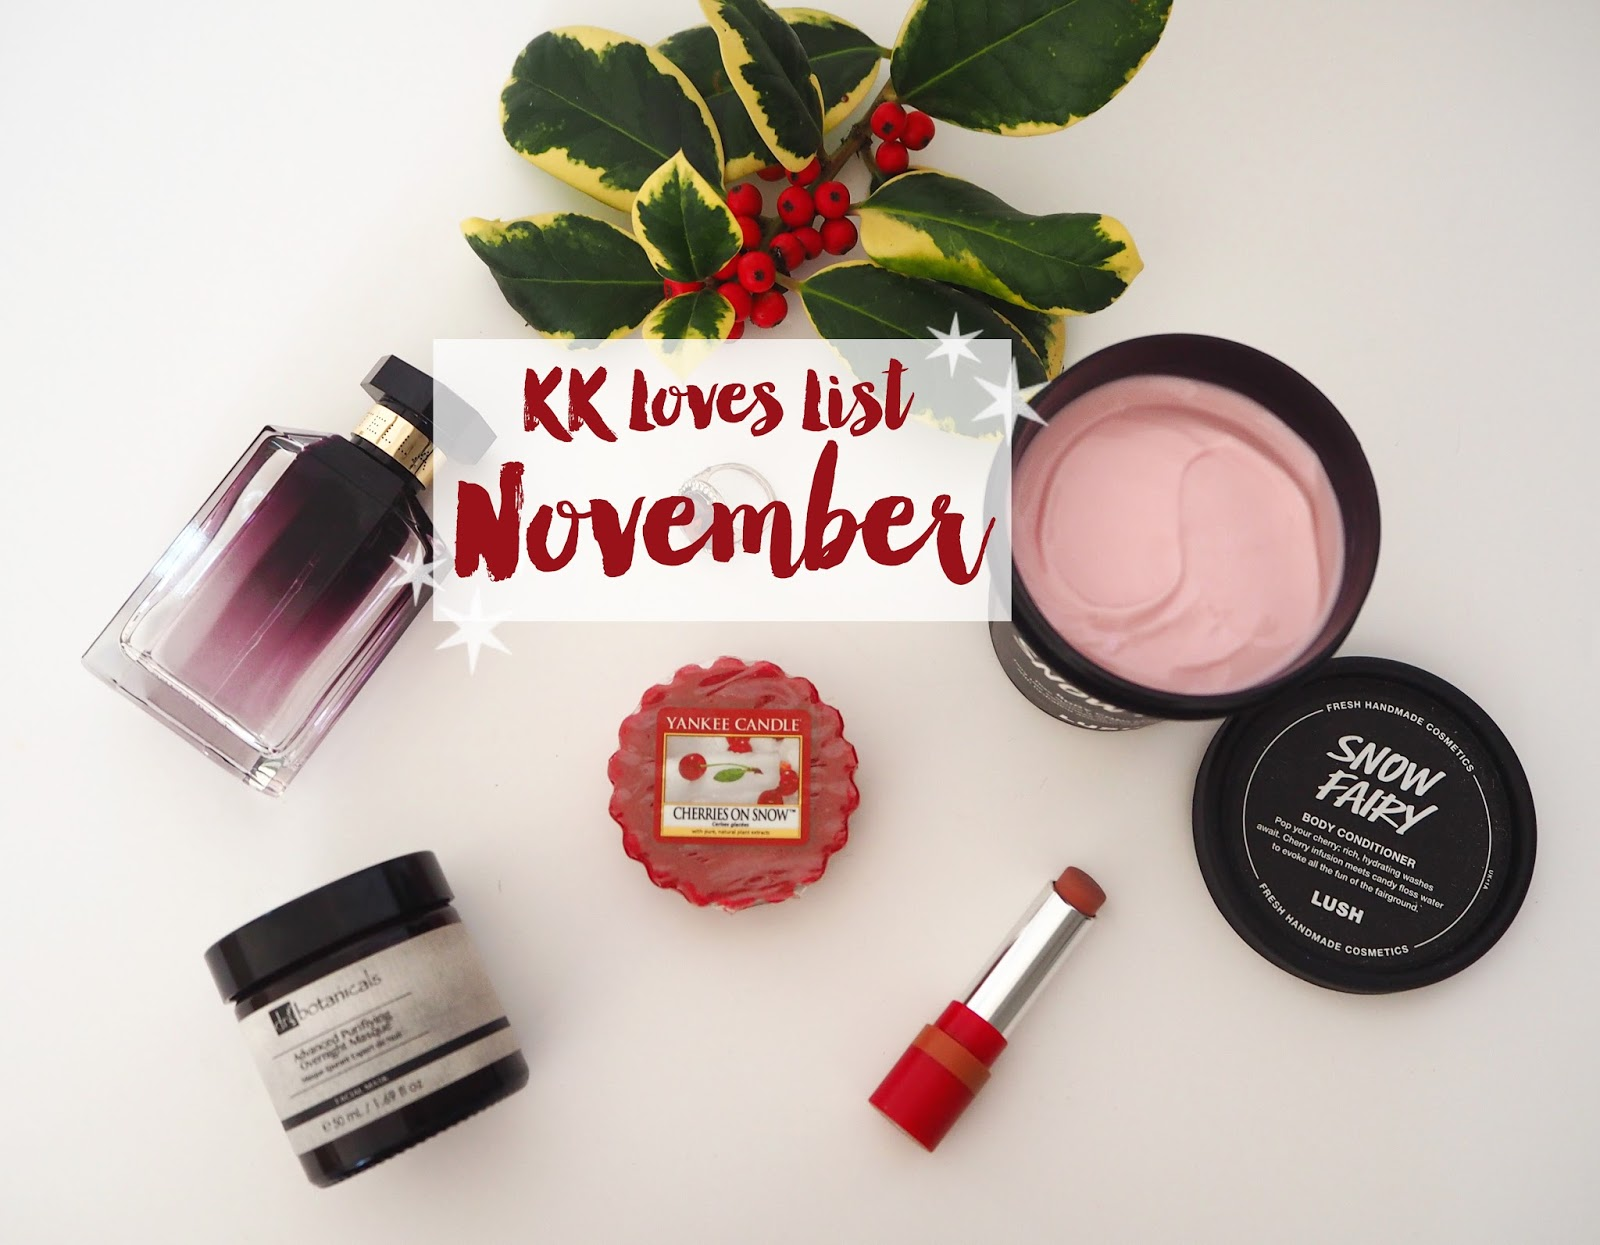 November Loves List, November Favourites, Katie Kirk Loves, Lush Cosmetics, Snow Fairy Body Conditioner, Stella McCartney Perfume, Dr Botanicals, Accessorize, Yankee Candle, Cherries on Snow, Rimmel London, Matte Lipstick, Rimmel Trendsetter, Skincare, UK Blogger, Christmas Canvas